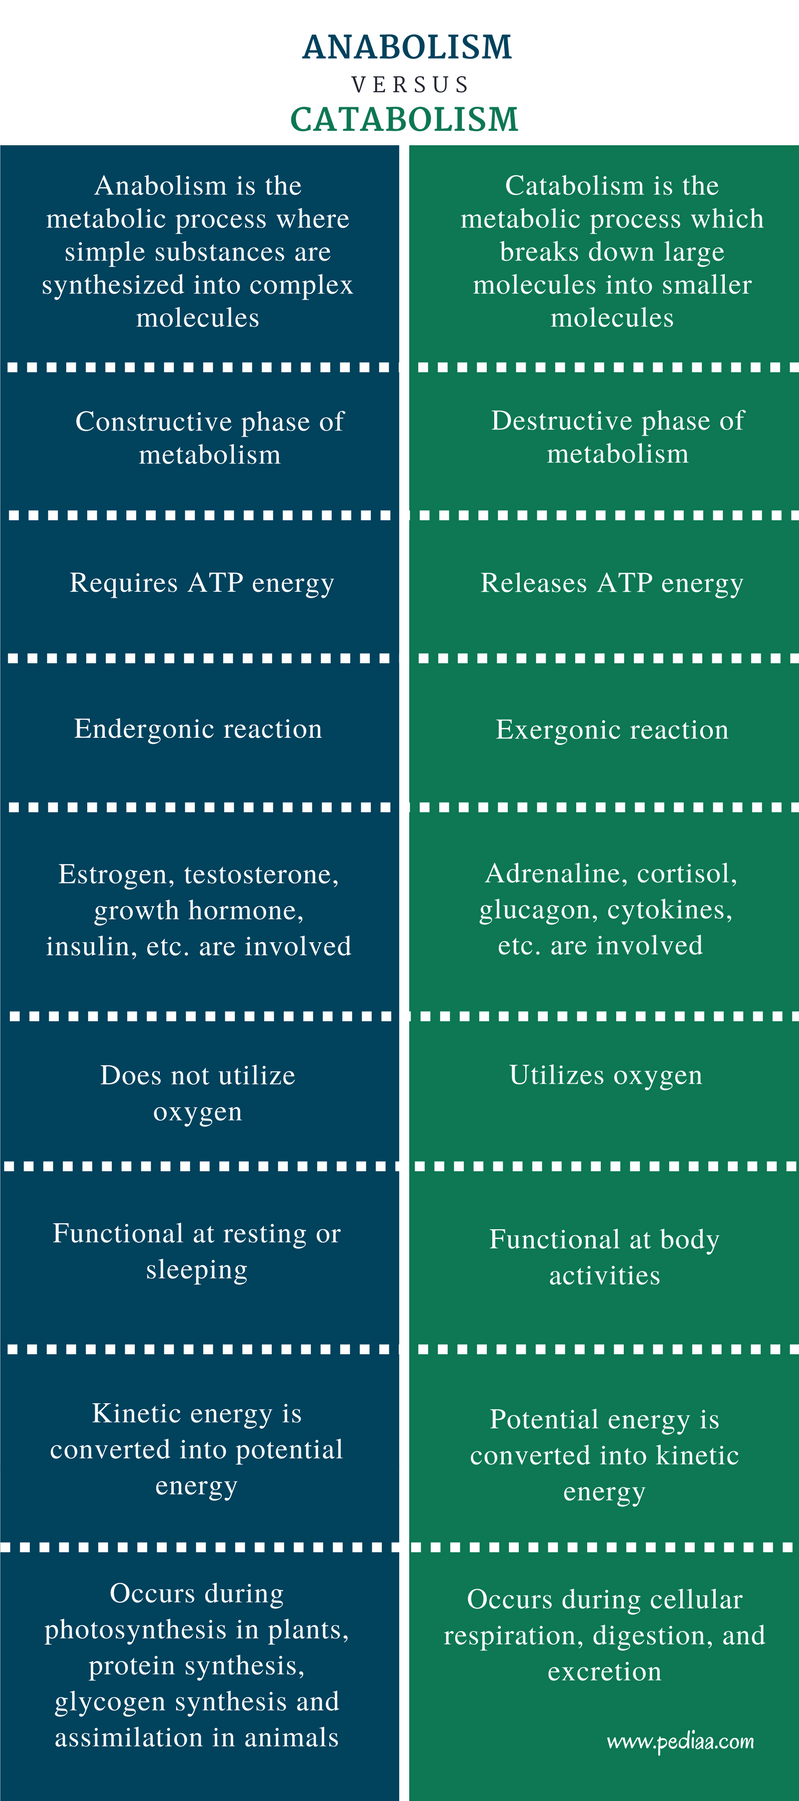 Difference Between Anabolism and Catabolism - Comparison Summary